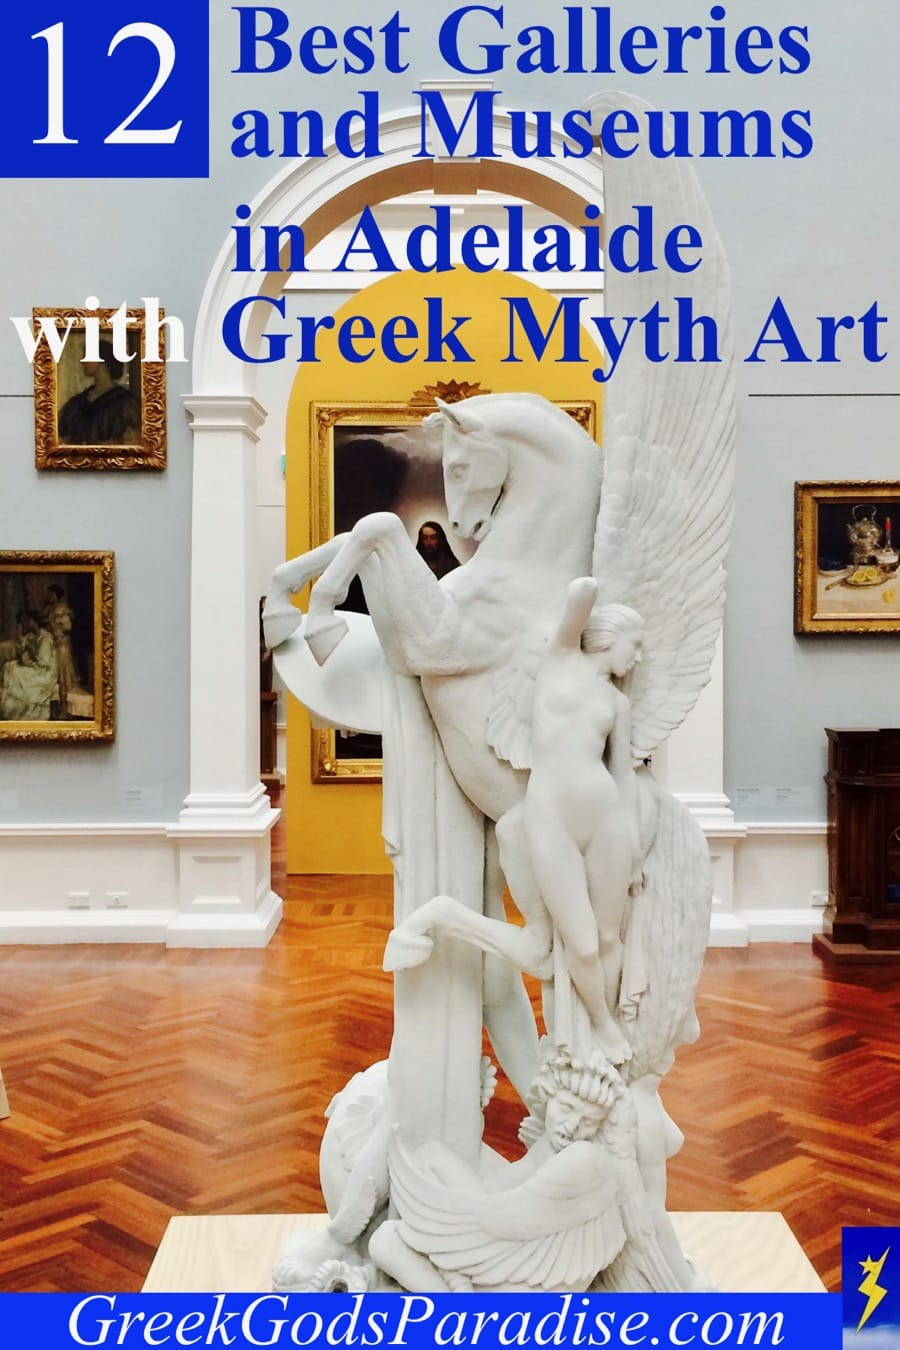 12 Best Galleries and Museums in Adelaide with Greek Myth Art